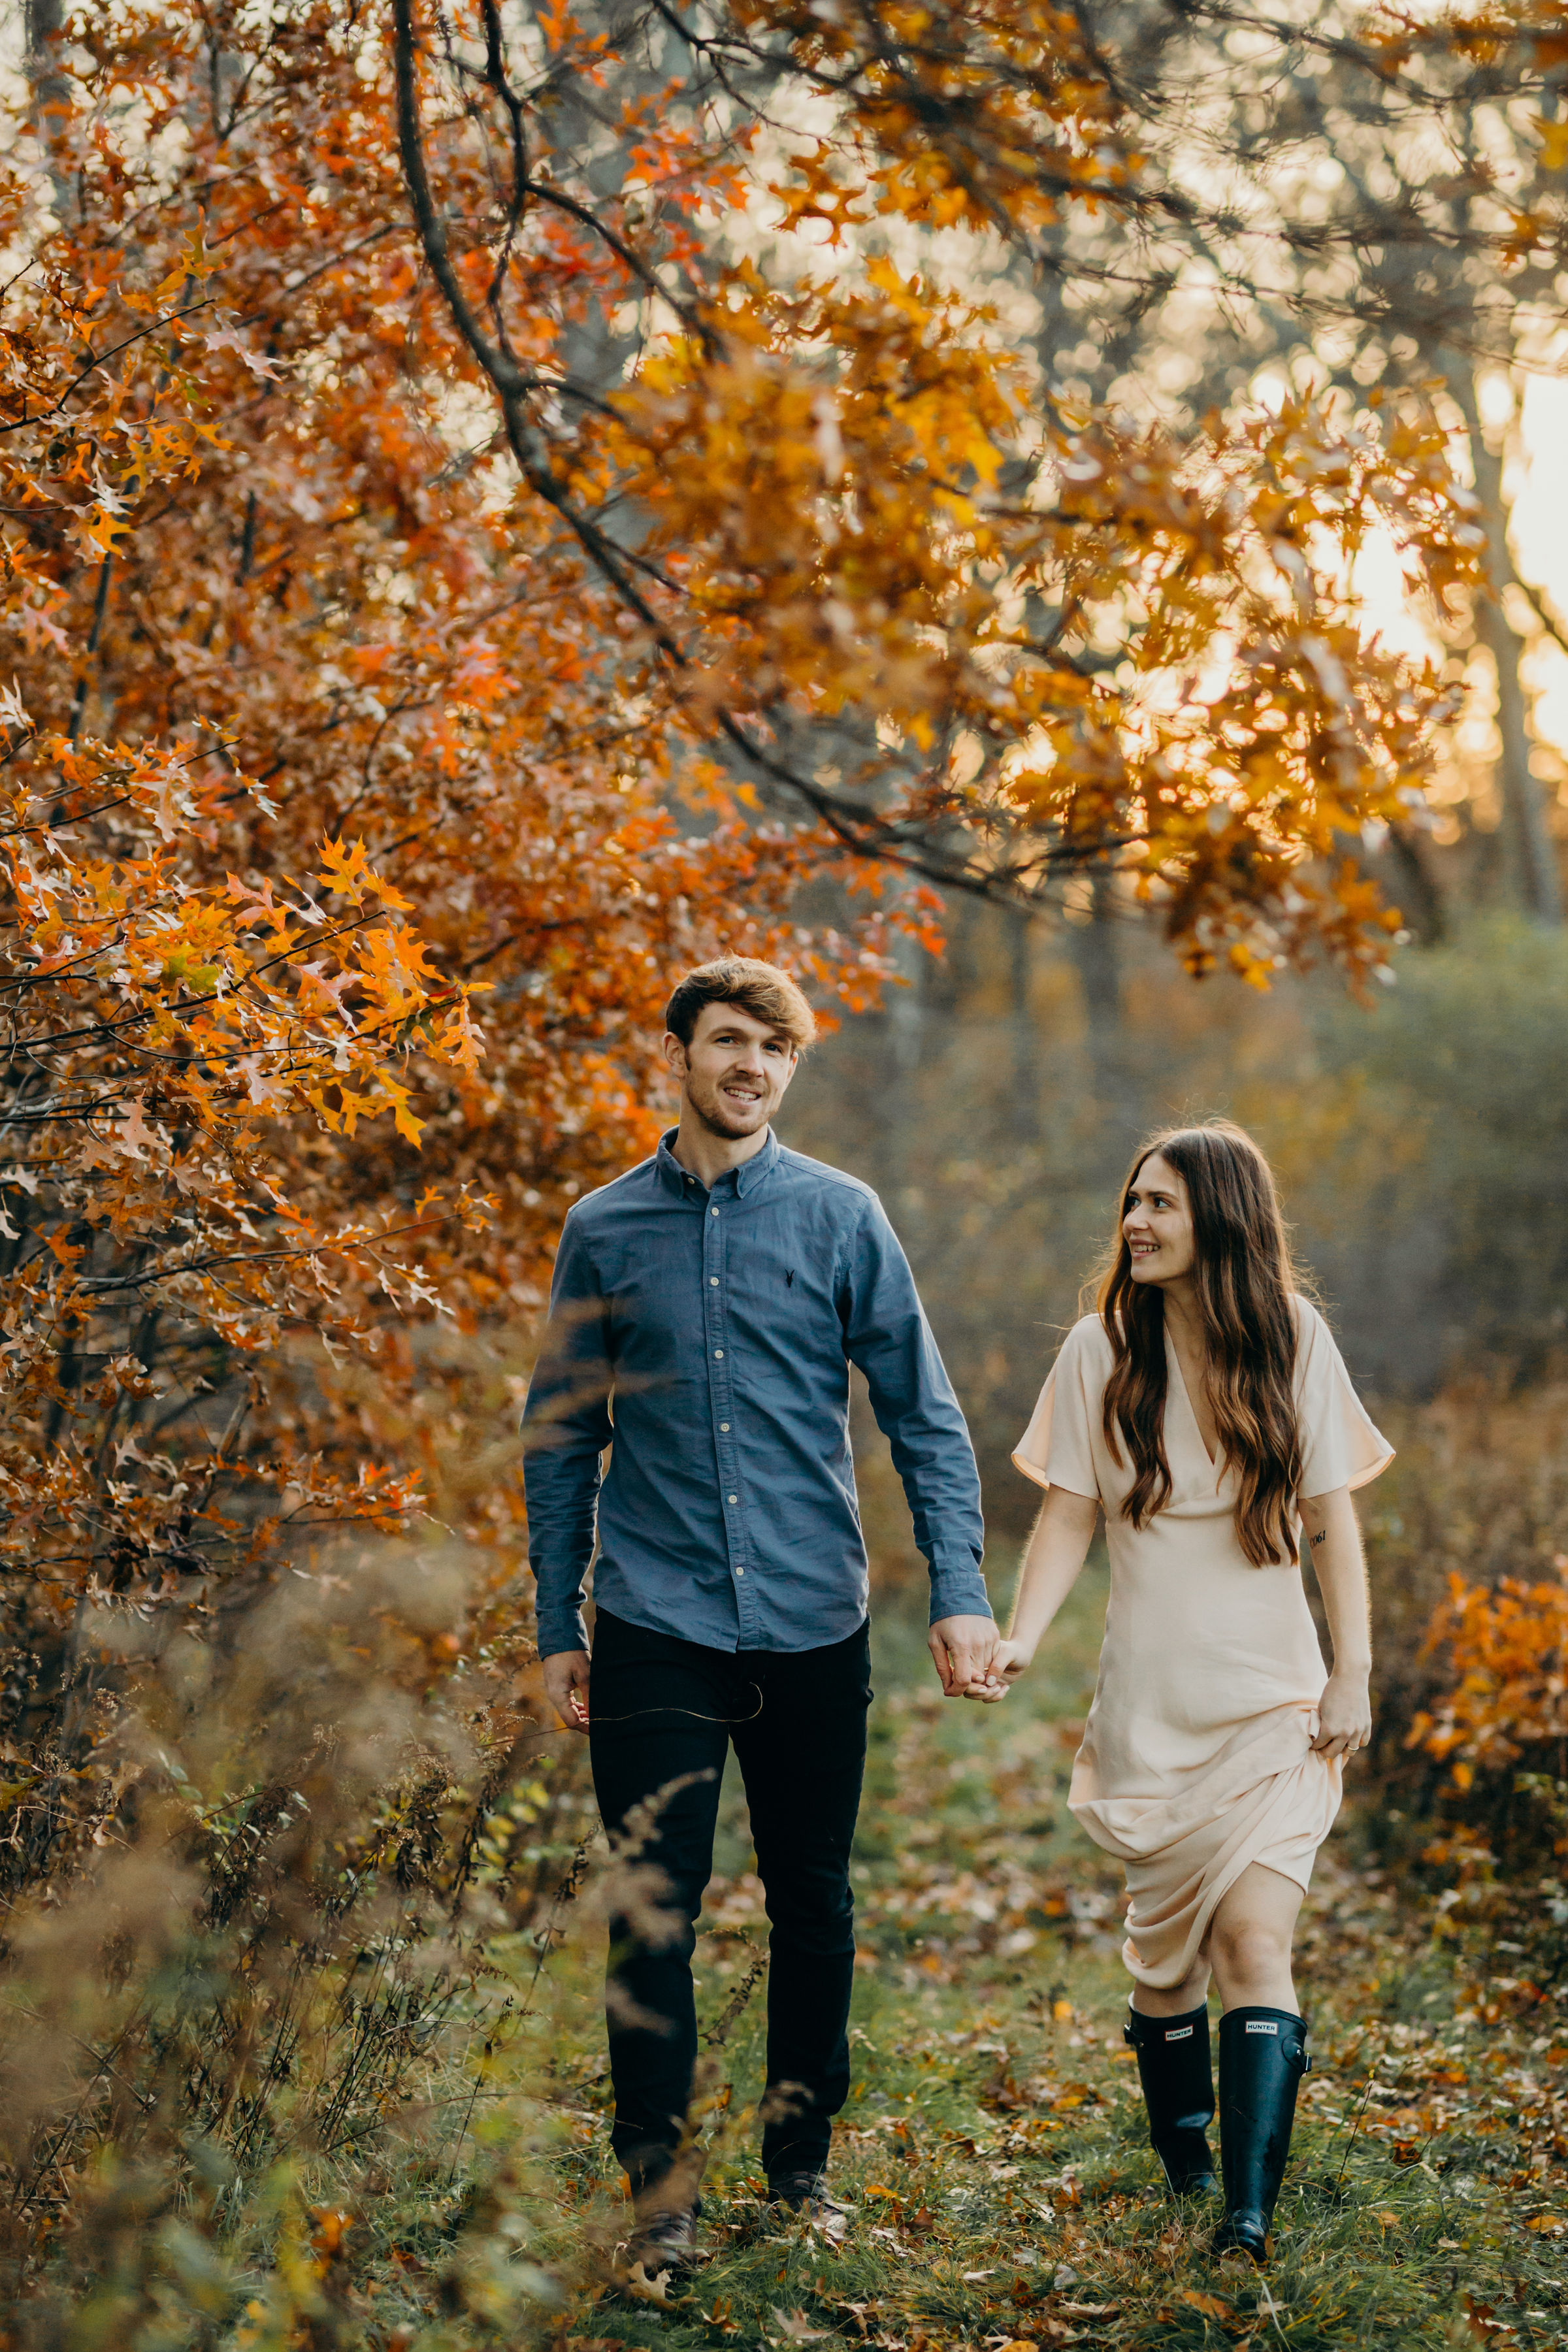 rustic-autumn-fall-north-northern-new-jersey-couple-portrait-elopement-photographer-151.jpg